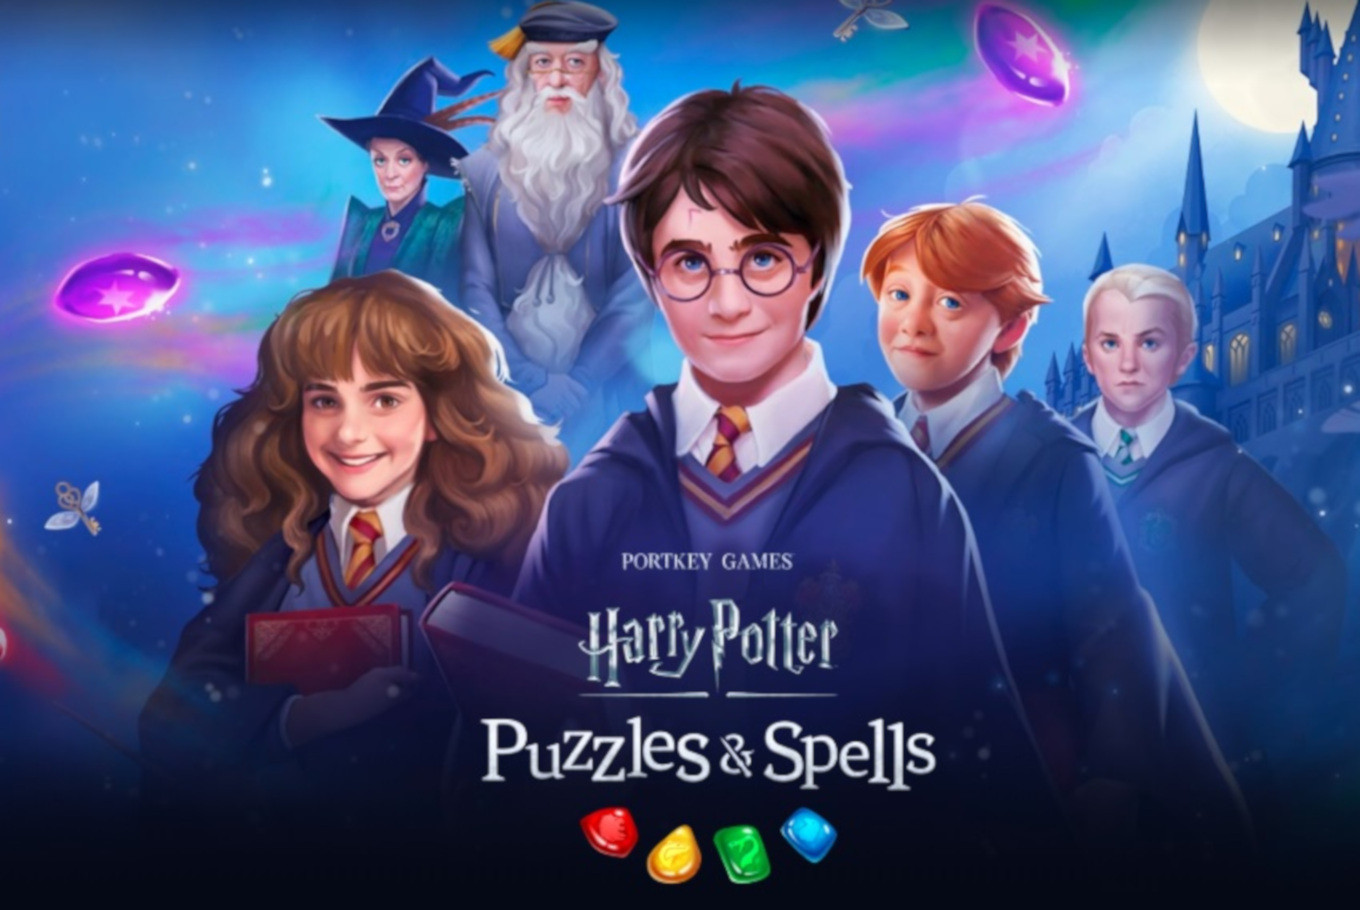 Zynga to release 'Harry Potter' puzzle game